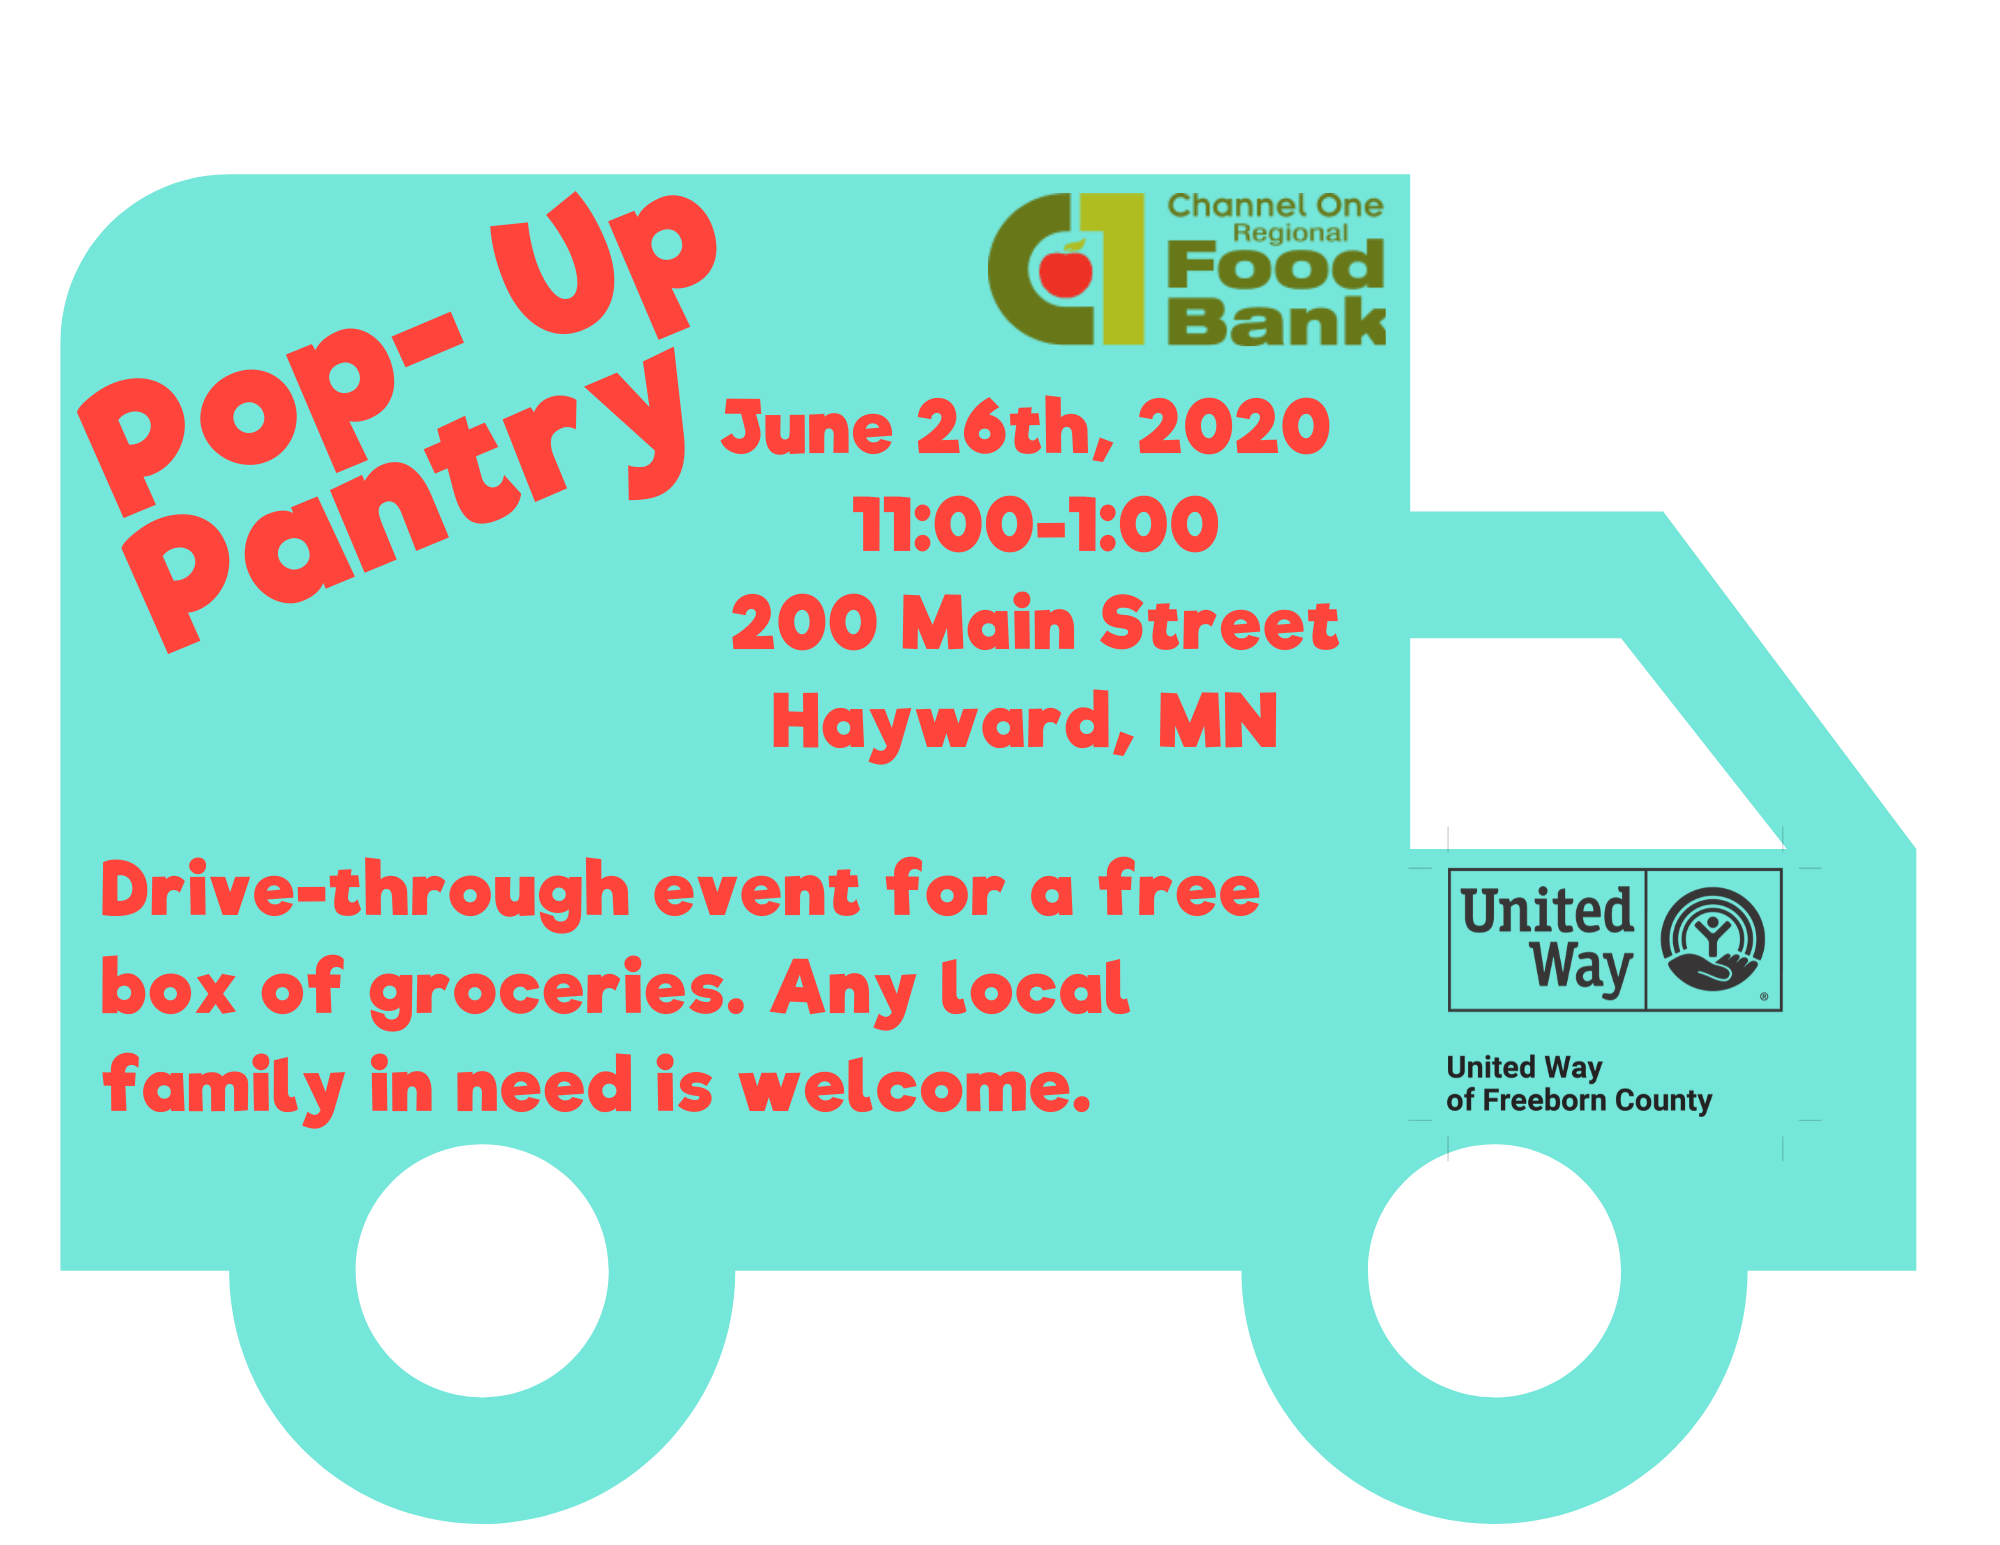 Hayward-Pop-Up-Pantry-Englin-infographic